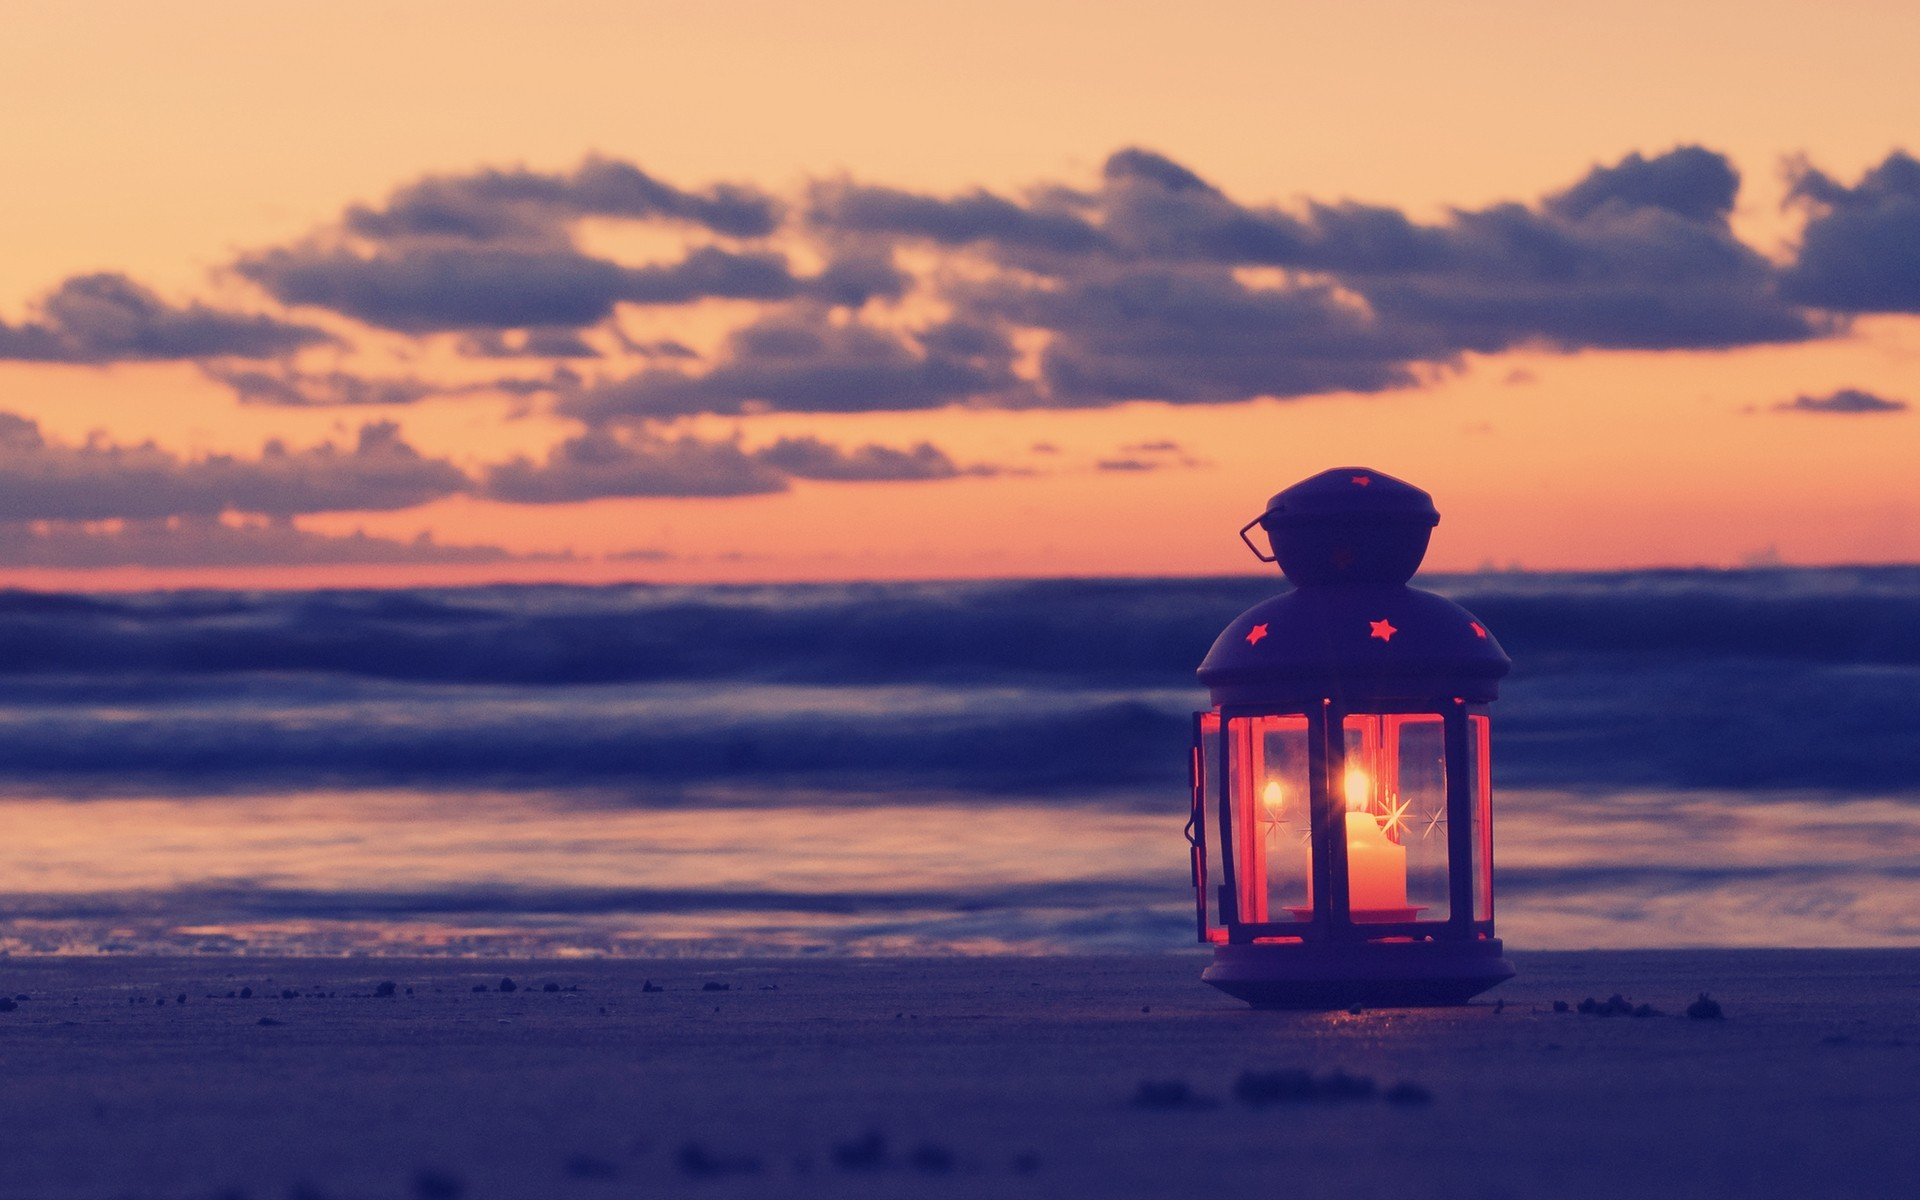 lamp candle beach sand sea evening - [1920 x 1200]